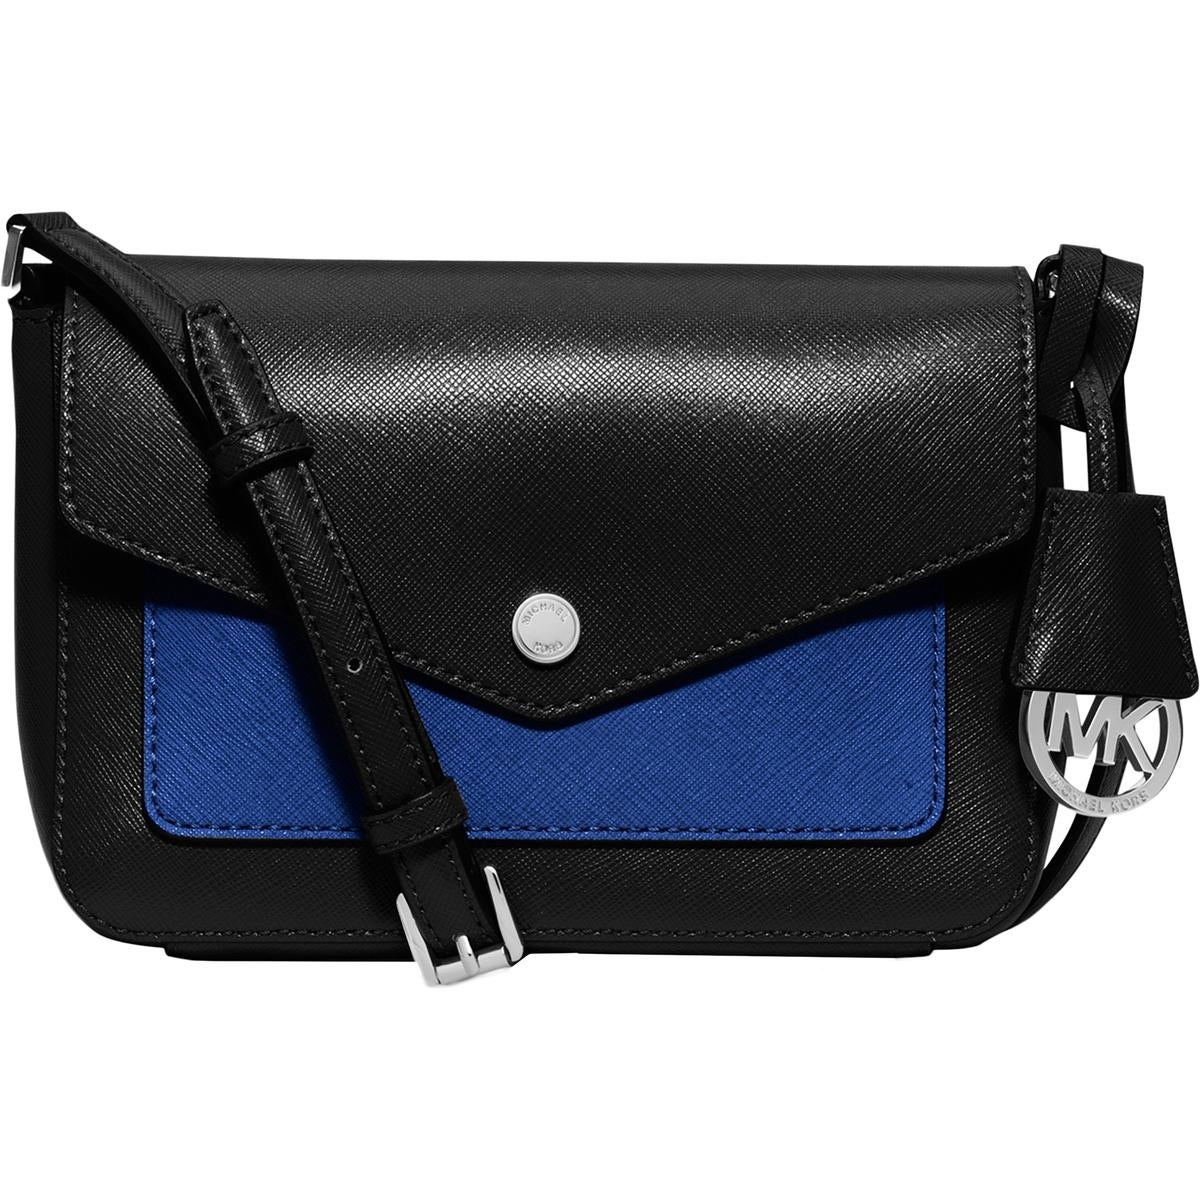 ad6ad15bdadfc0 Shop MICHAEL Michael Kors Womens Greenwich Color Pkt Crossbody Handbag  Leather - small - Free Shipping Today - Overstock - 20619284